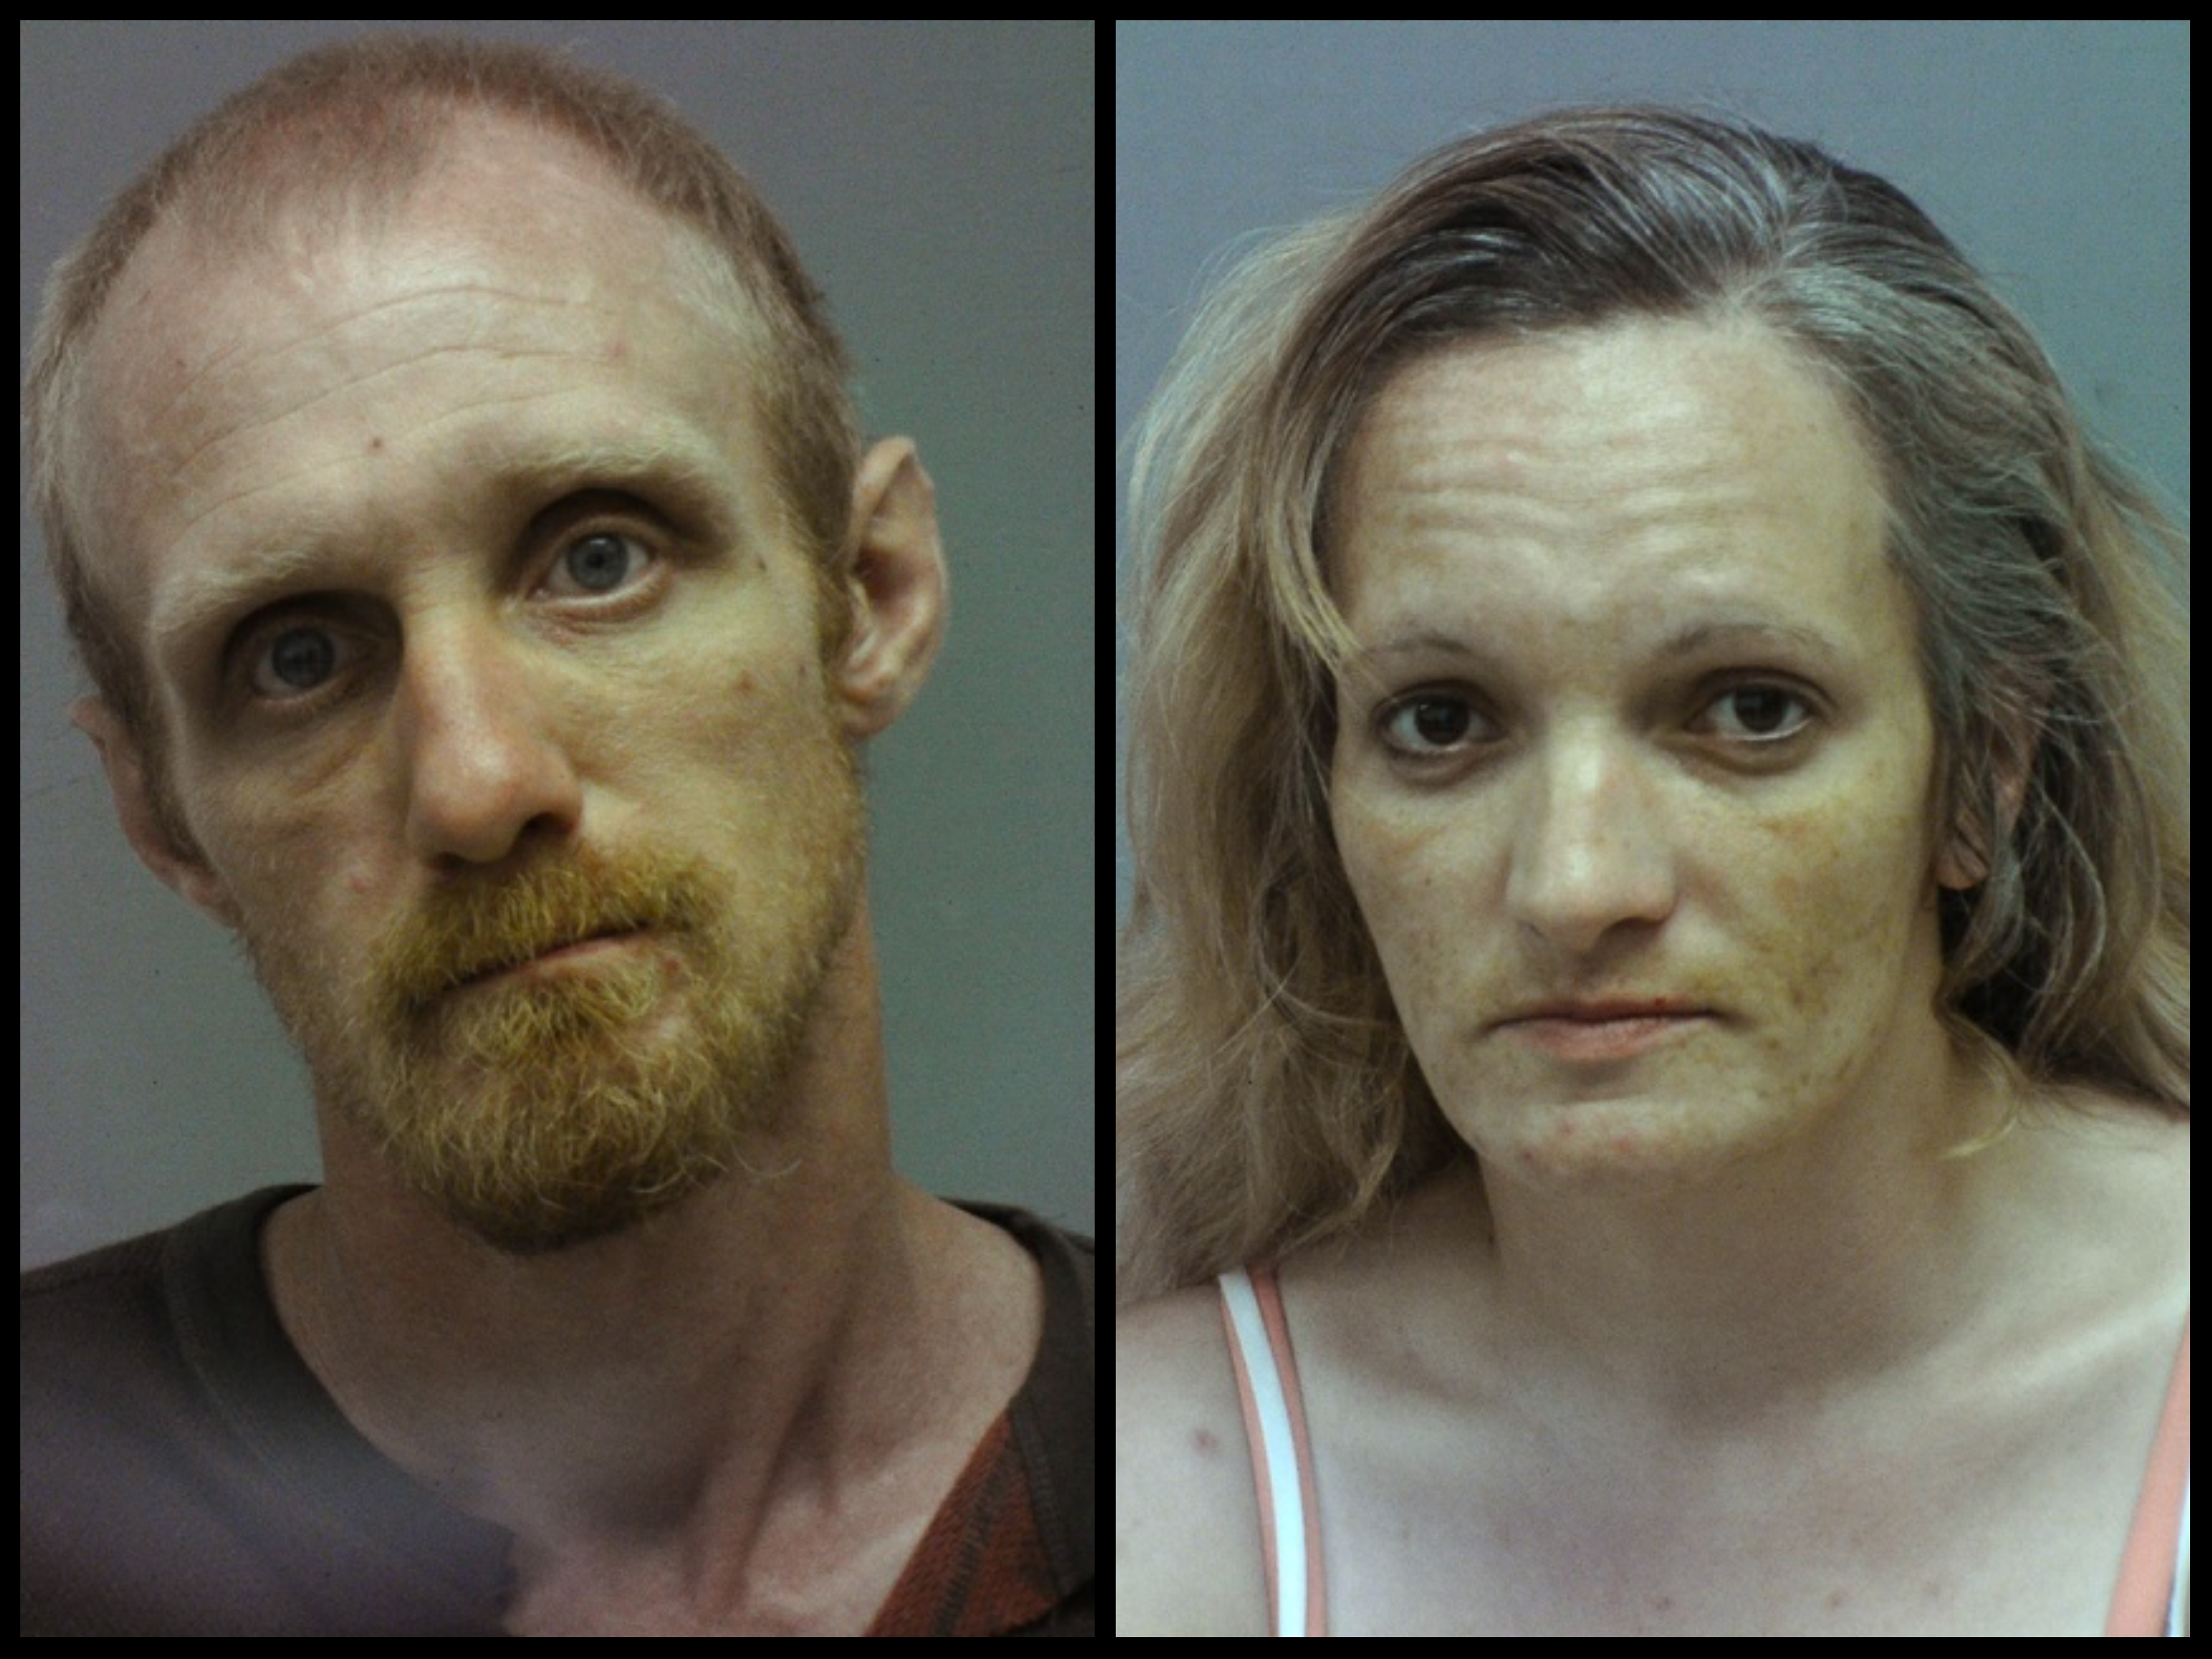 Two arrested in connection with string of thefts and